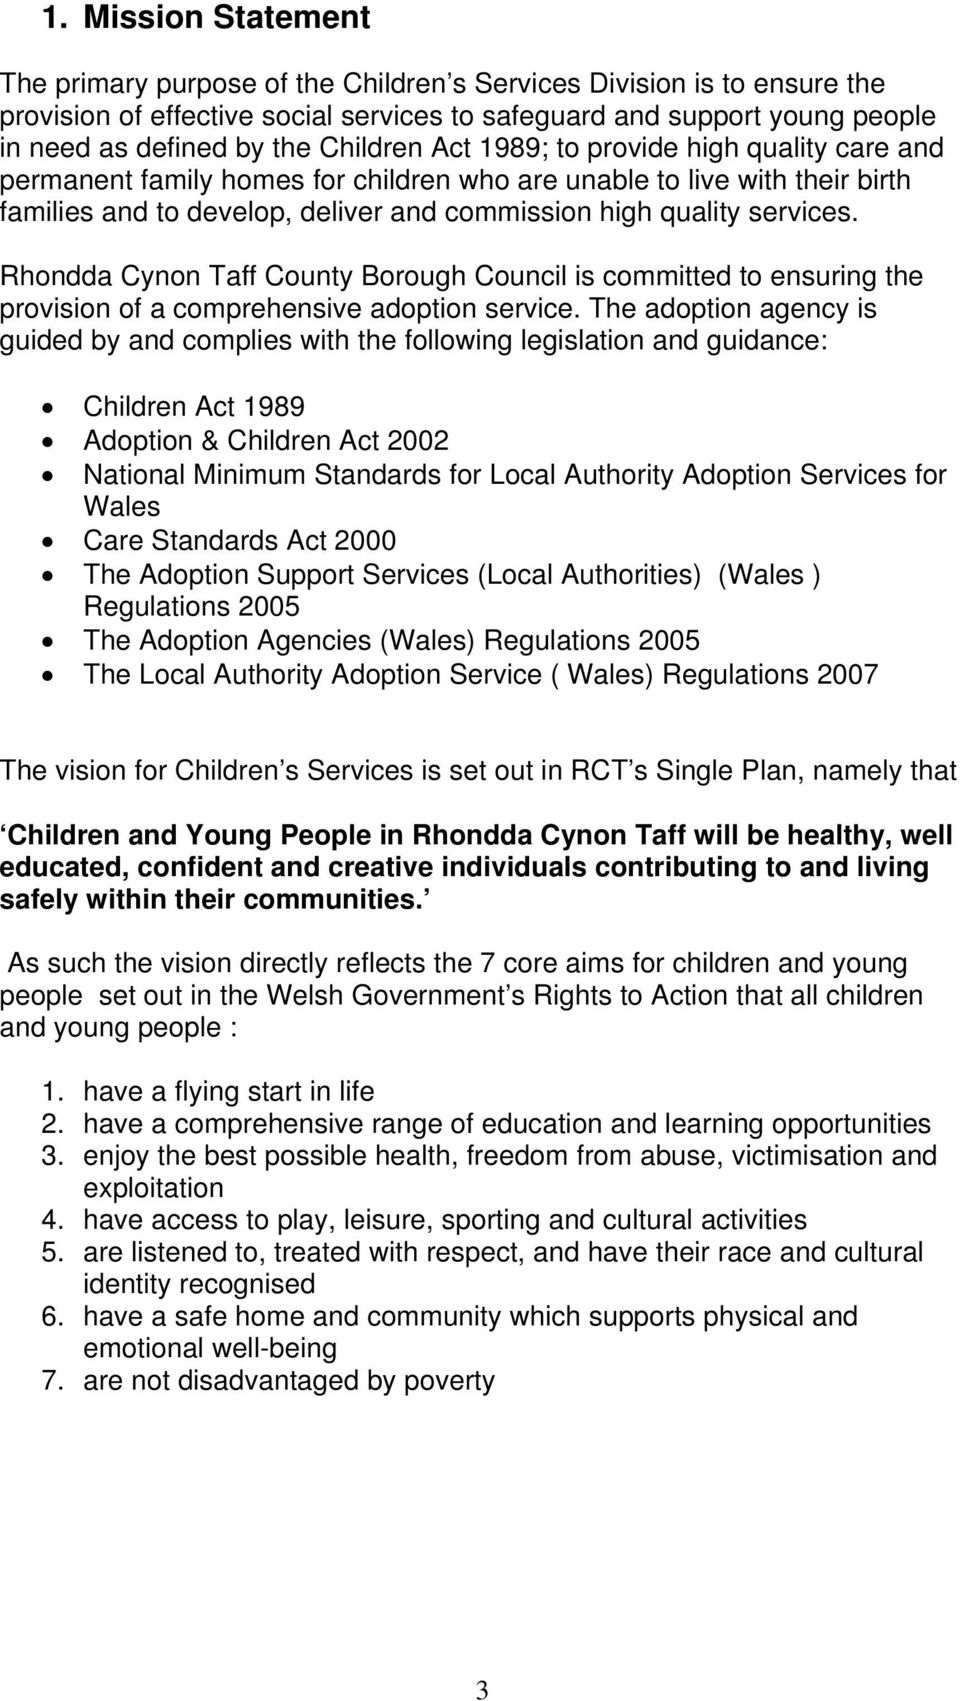 Rhondda Cynon Taff County Borough Council is committed to ensuring the provision of a comprehensive adoption service.